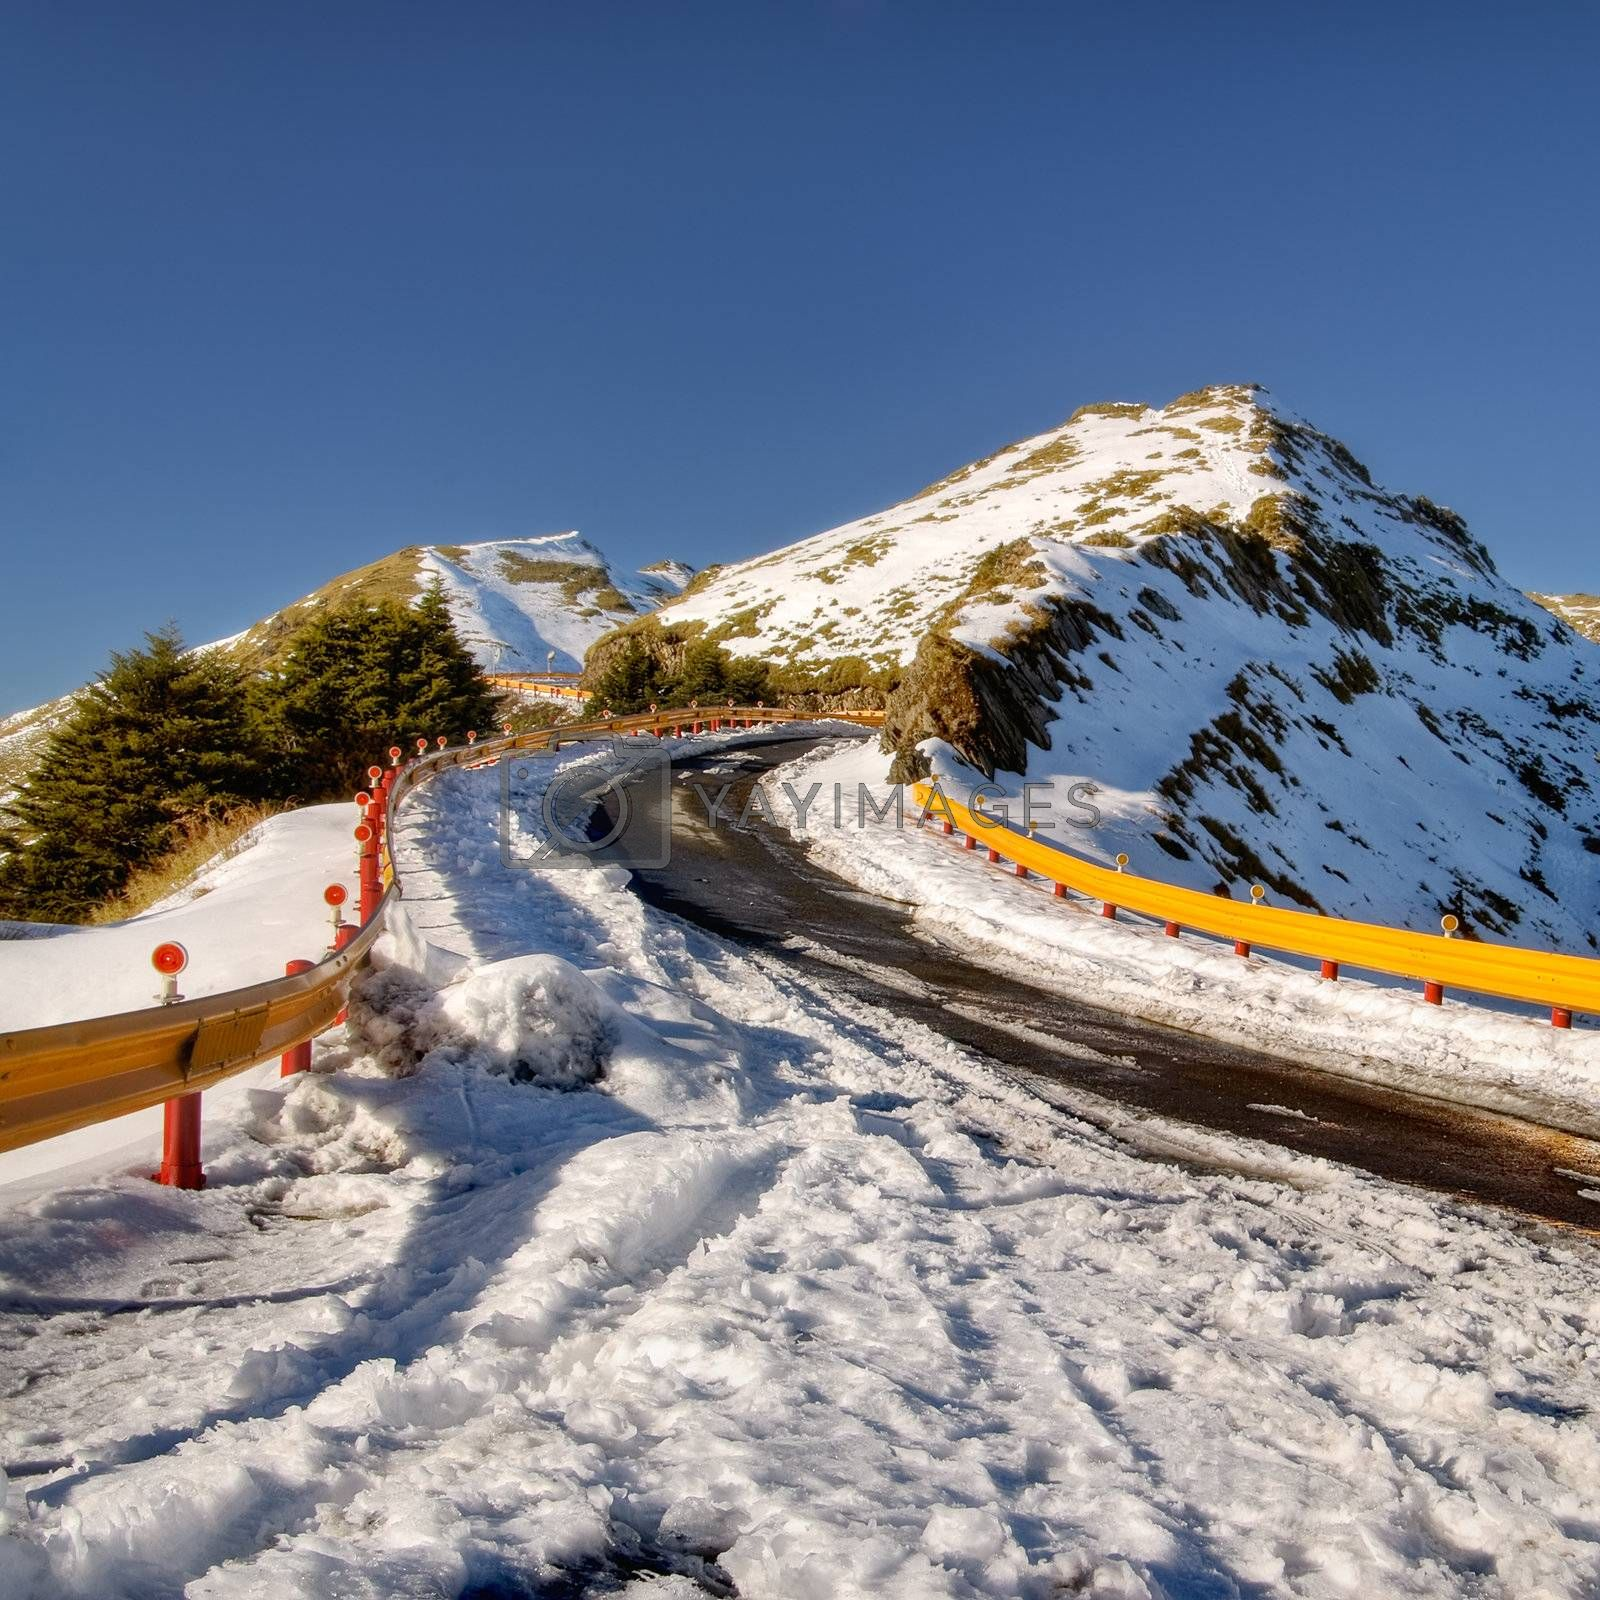 Landscape of winter mountain with roads with ice in Taiwan, Asia.